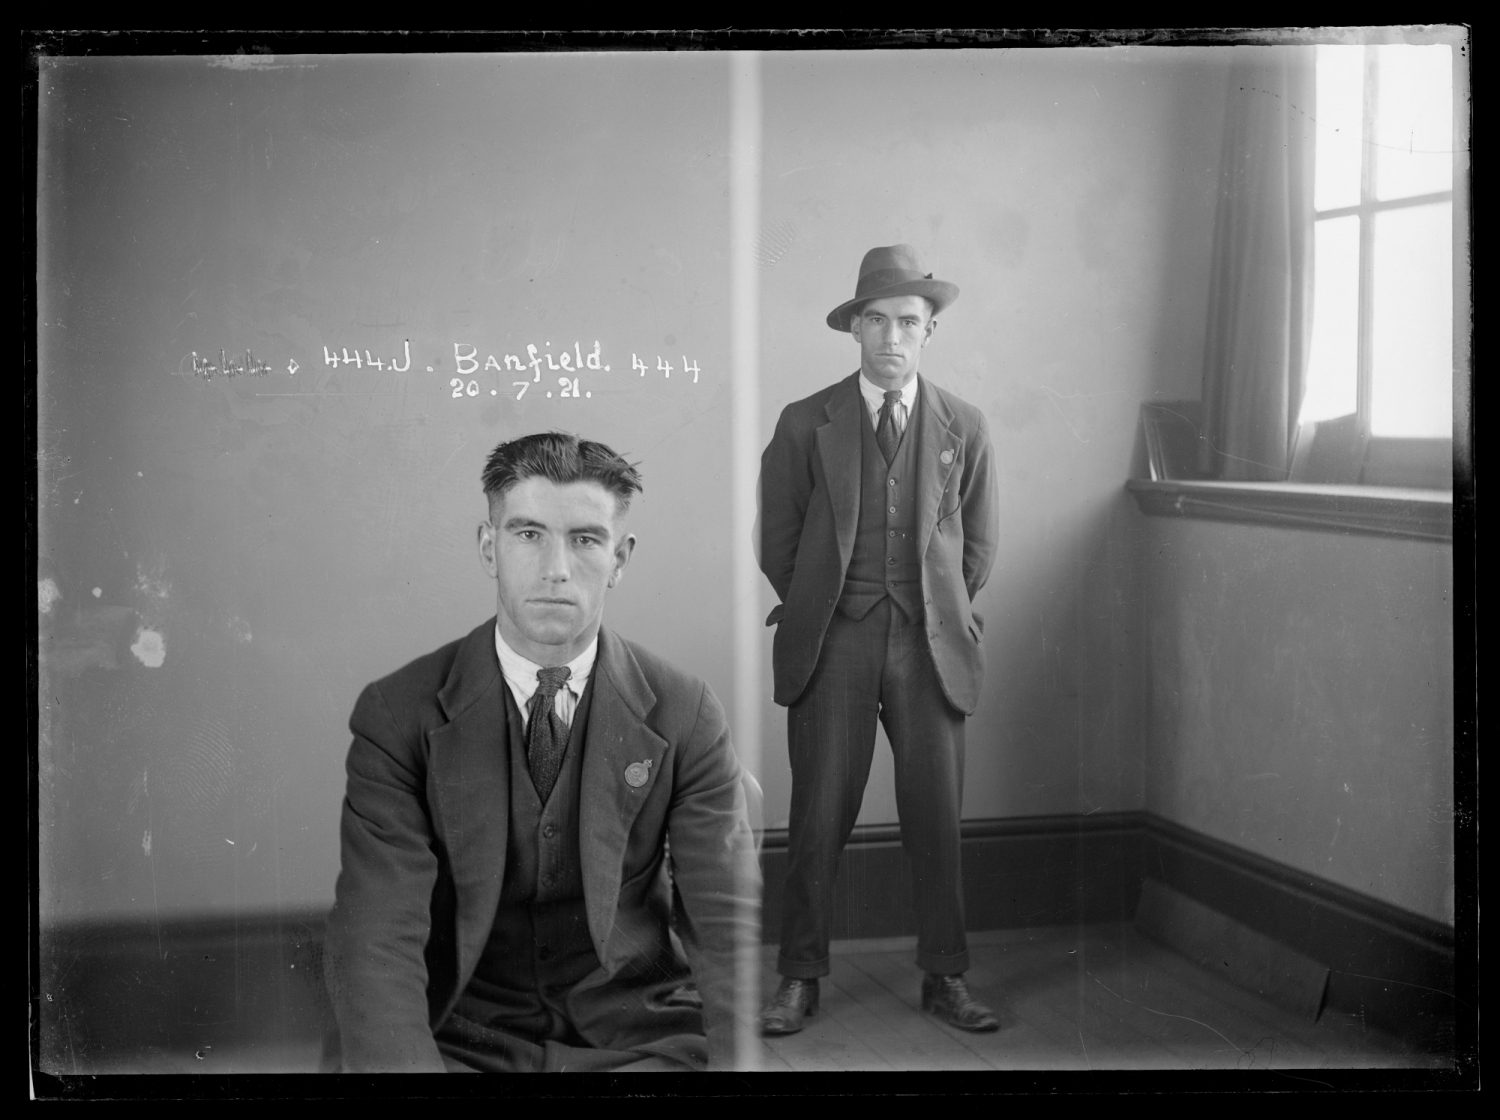 Two photos side by side, first showing seated man, second showing man standing, with hat on.